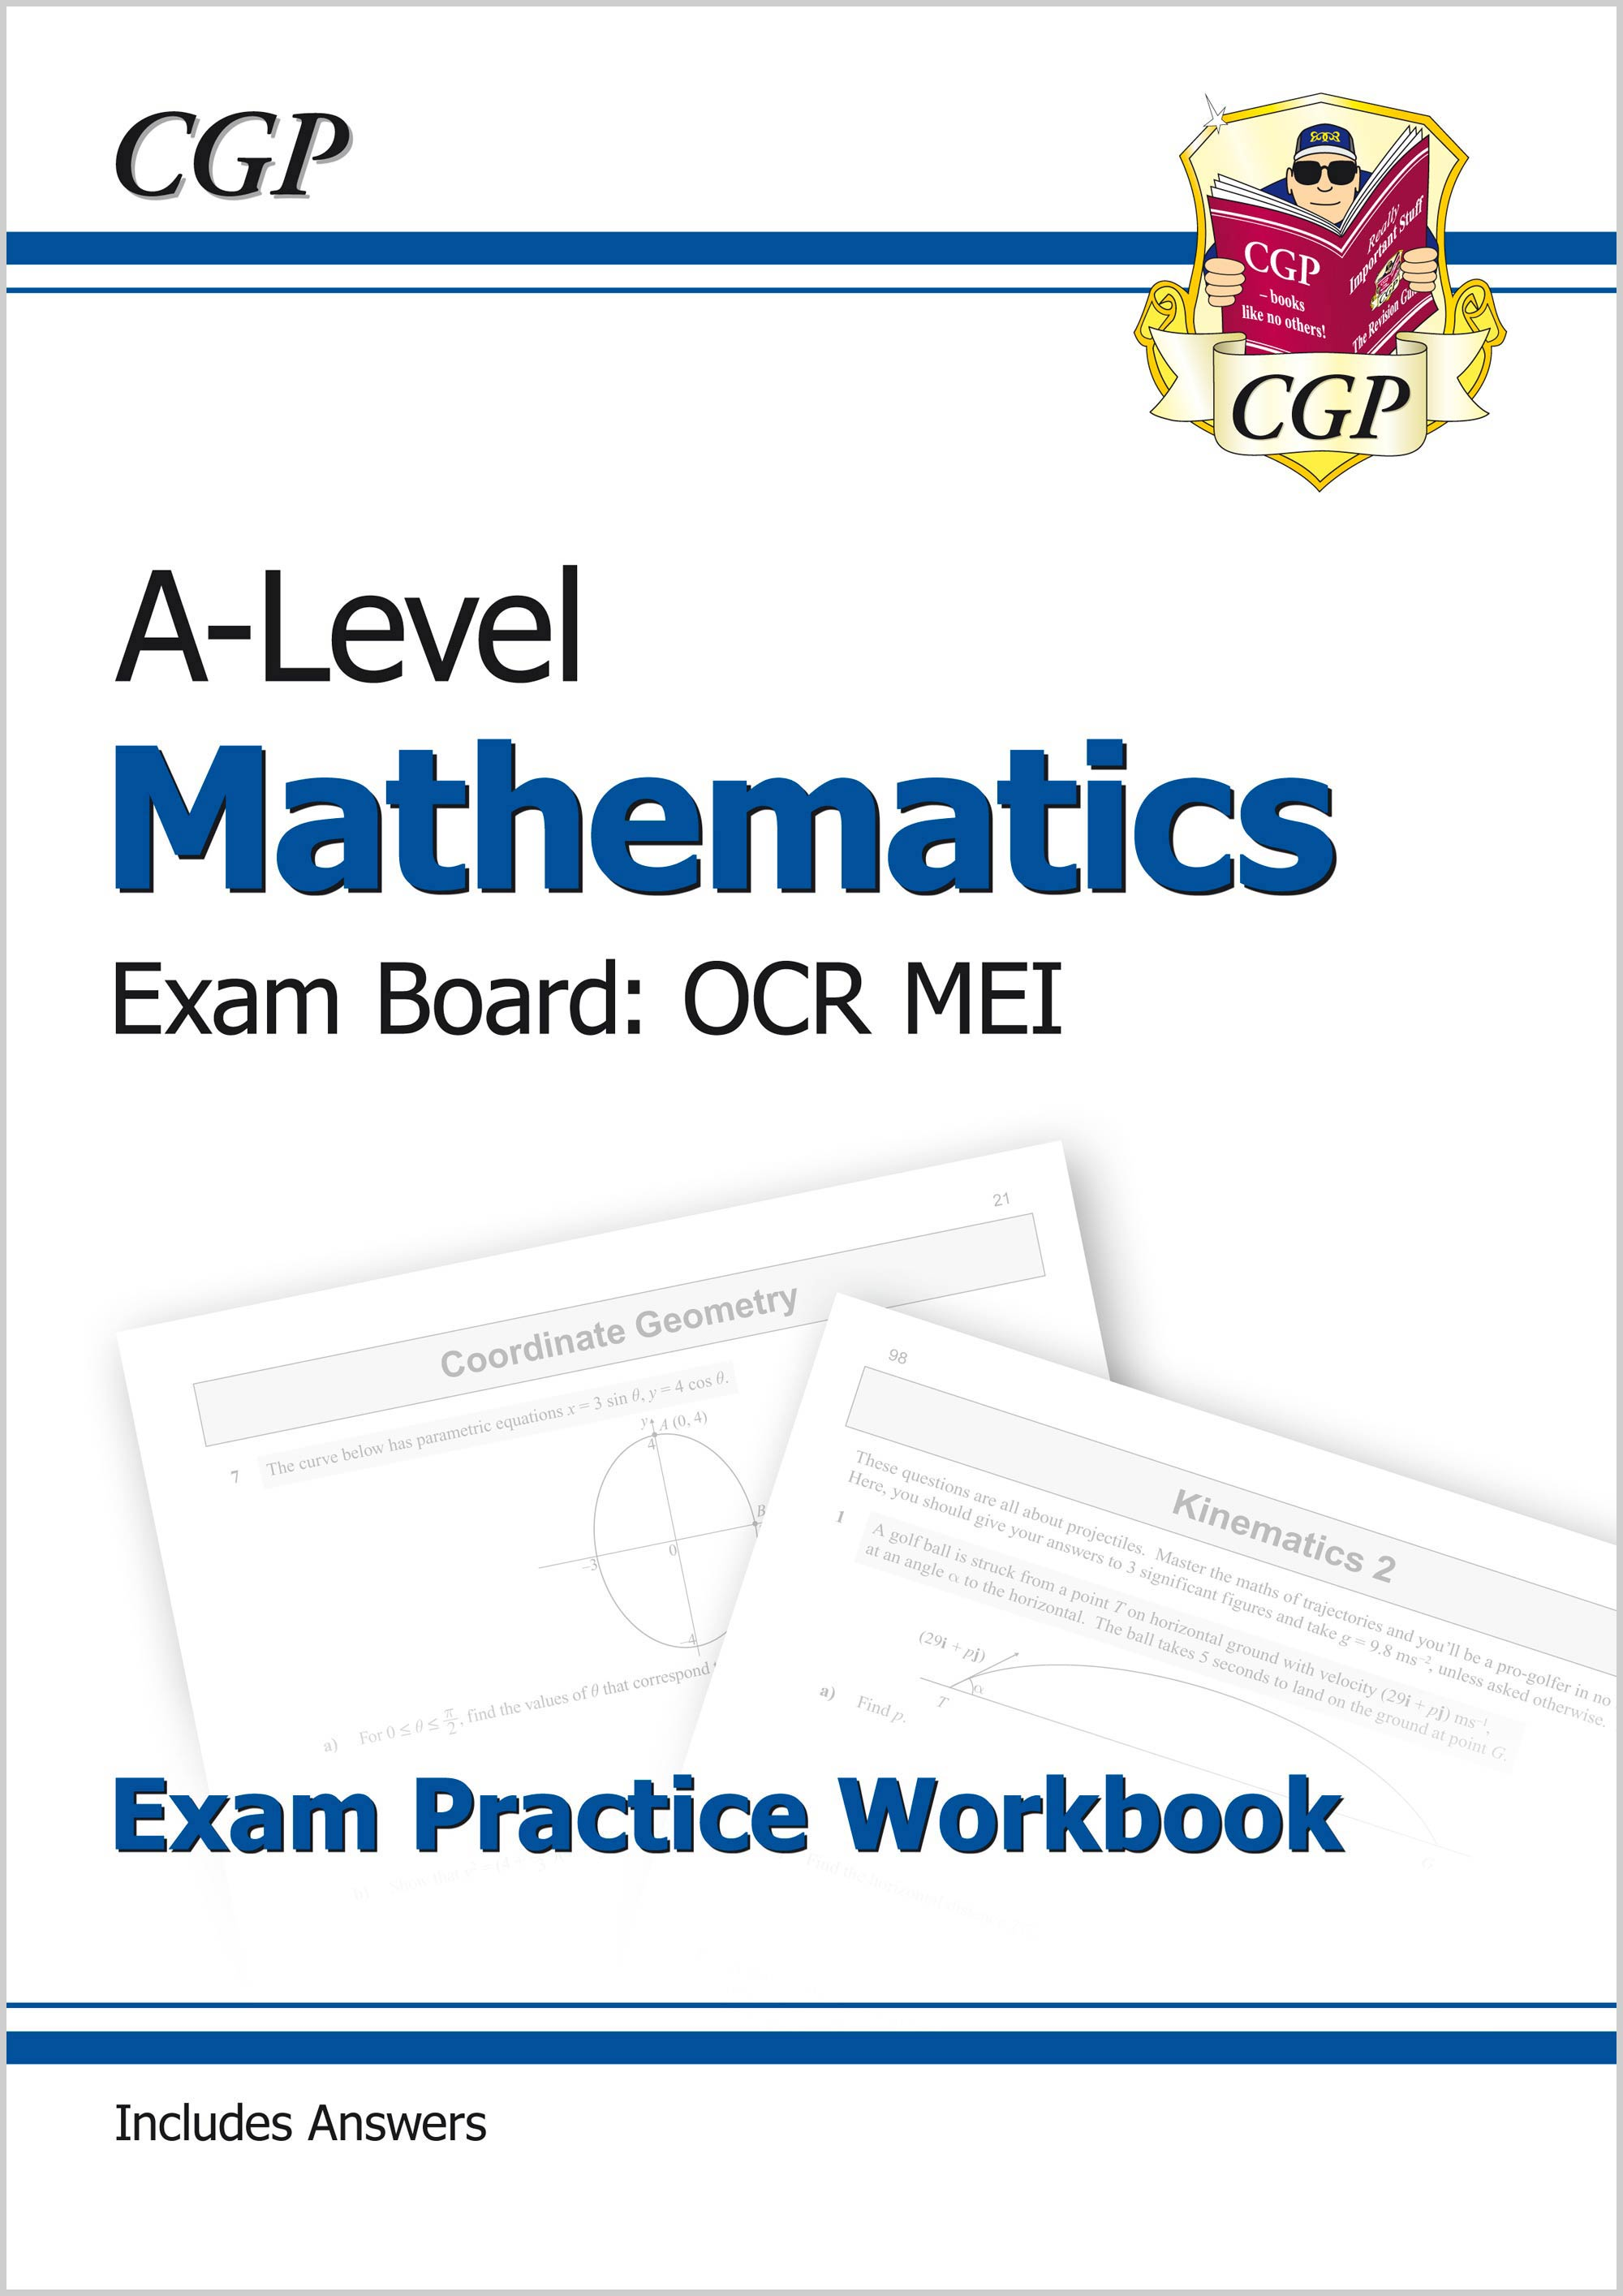 MRMQ71 - A-Level Maths for OCR MEI: Year 1 & 2 Exam Practice Workbook